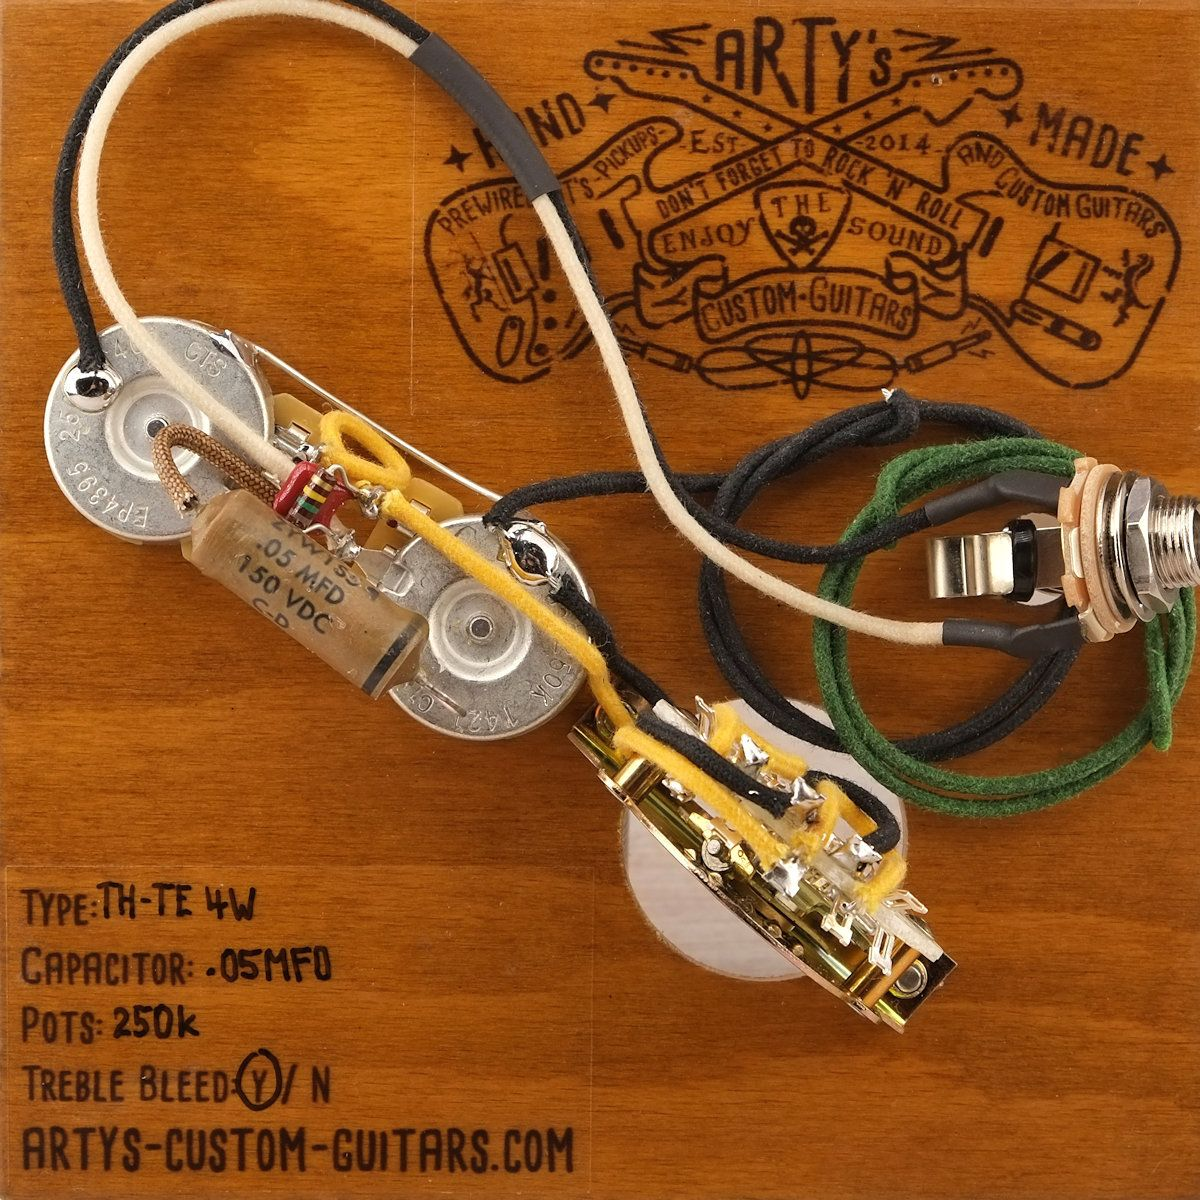 medium resolution of arty s custom guitars 4 way premium vintage pre wired prewired kit wiring assembly harness arty